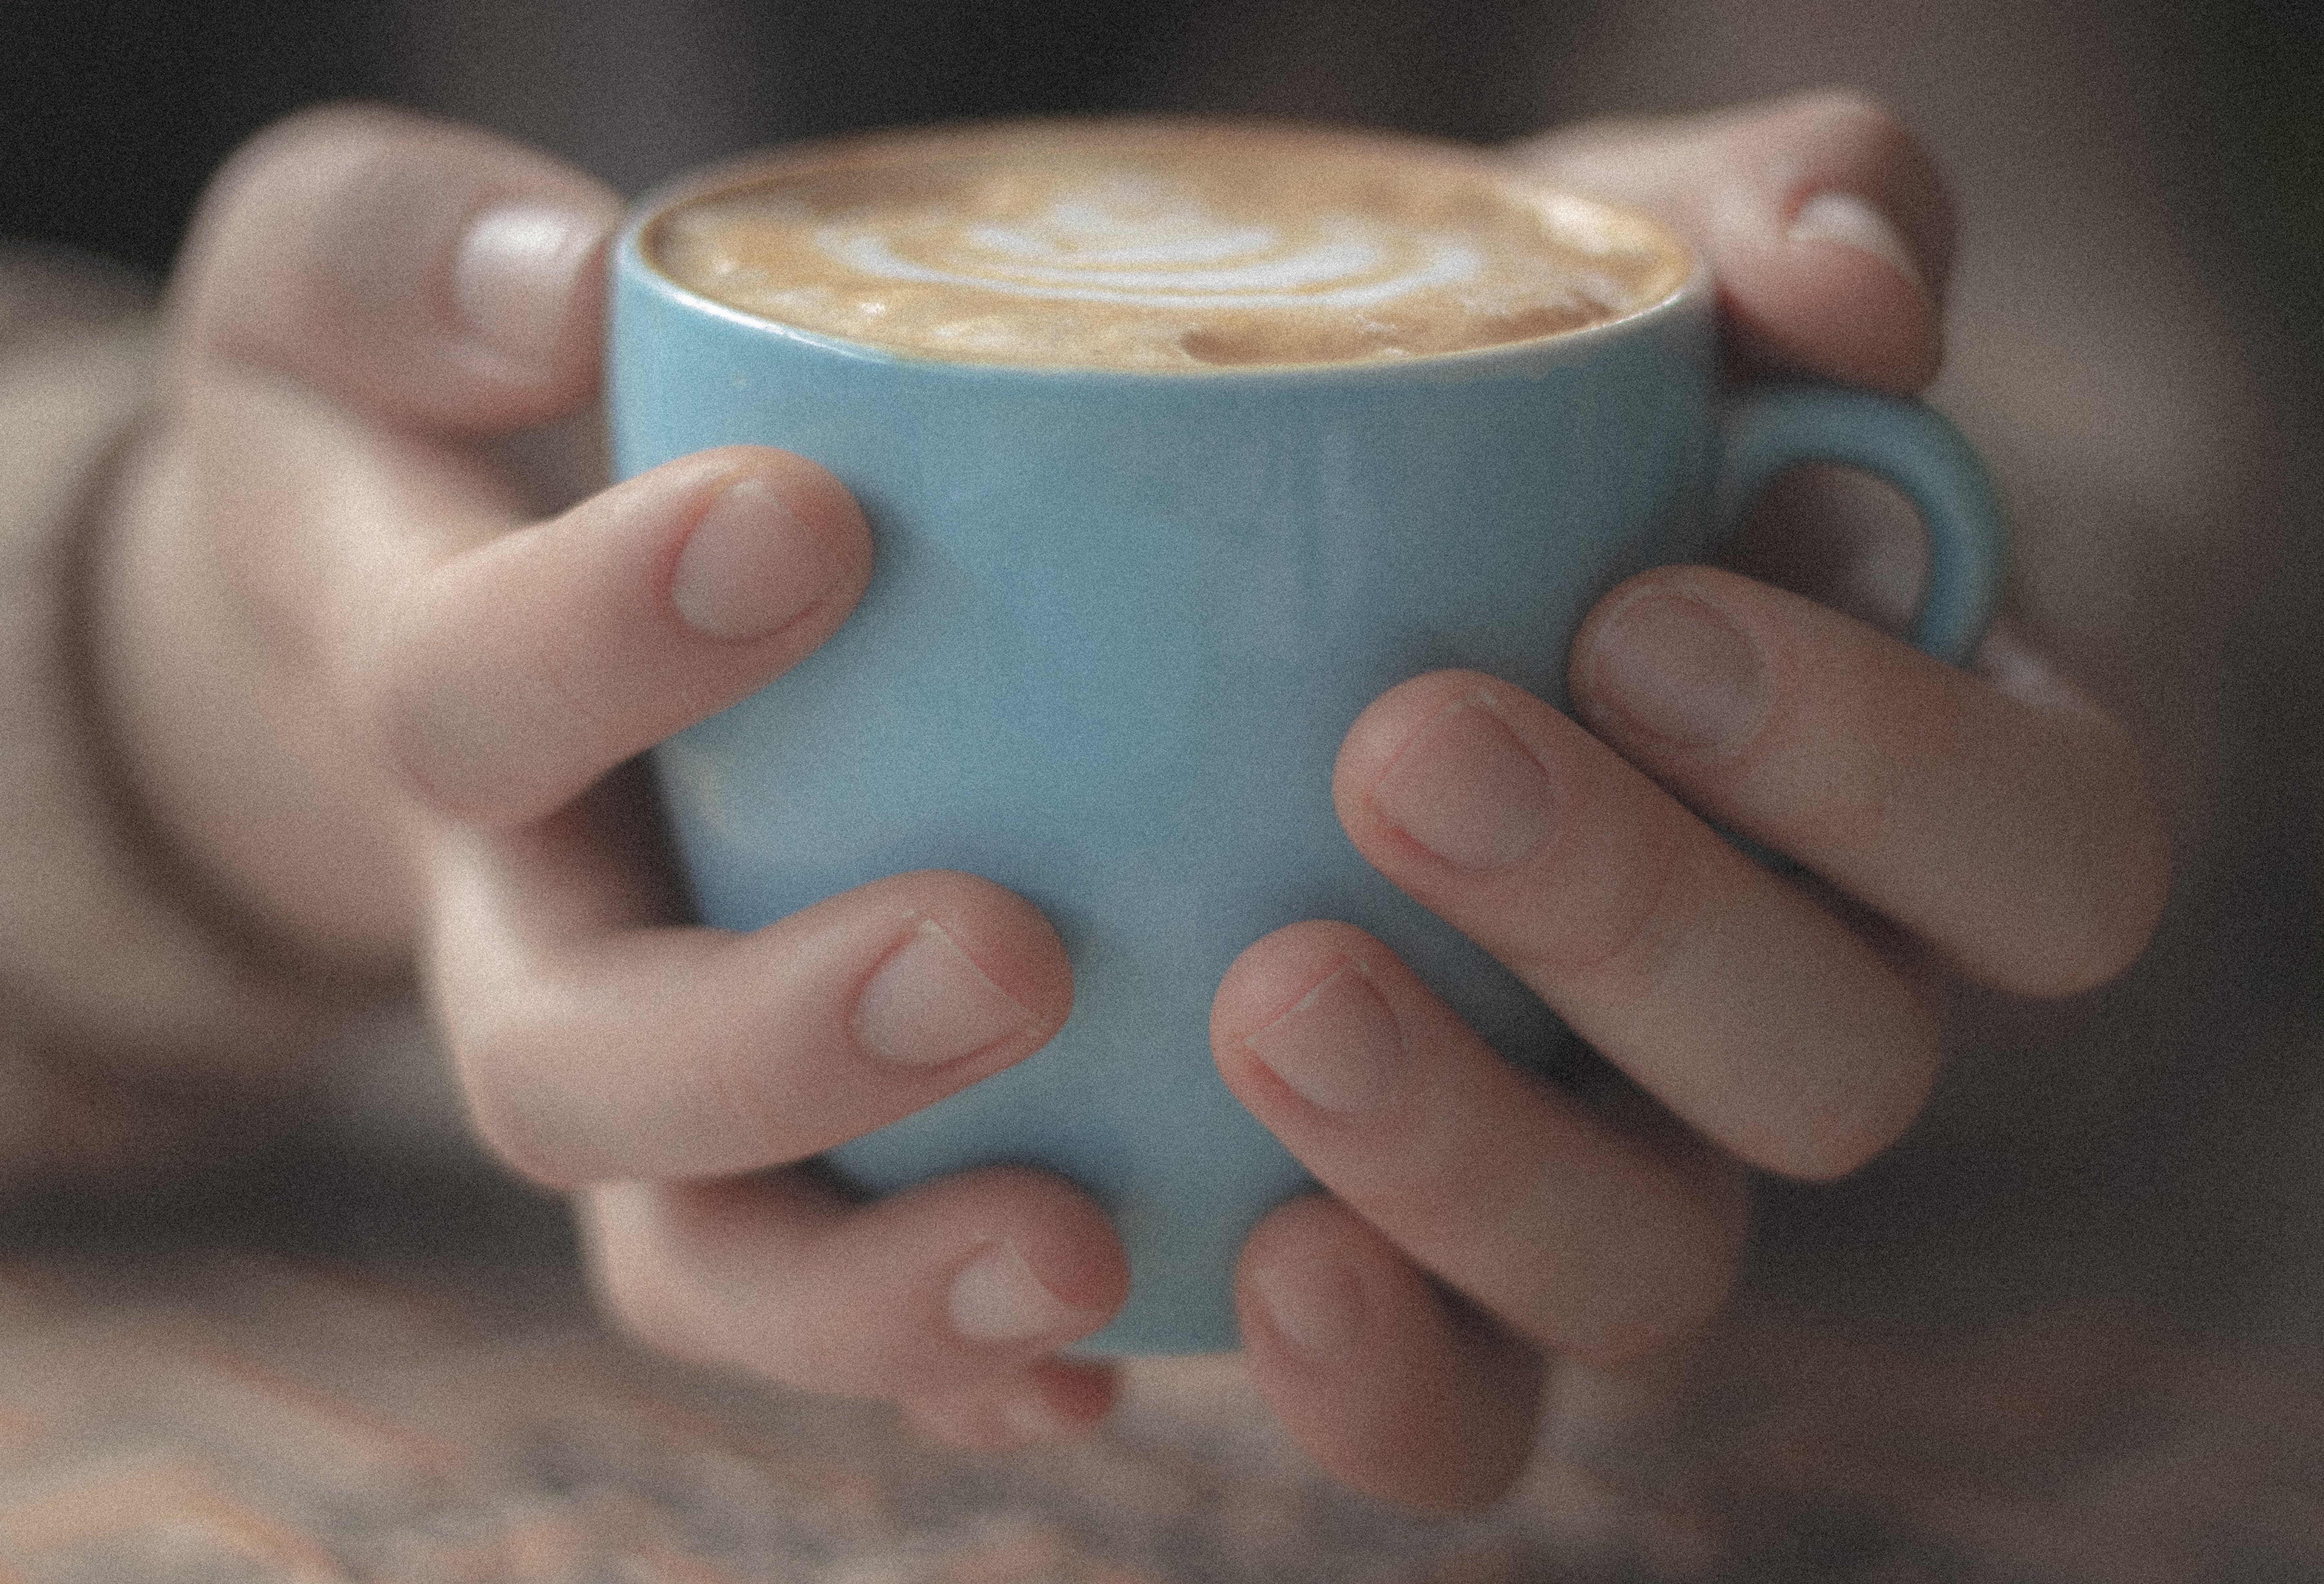 Free stock photo of blue, cup, hands